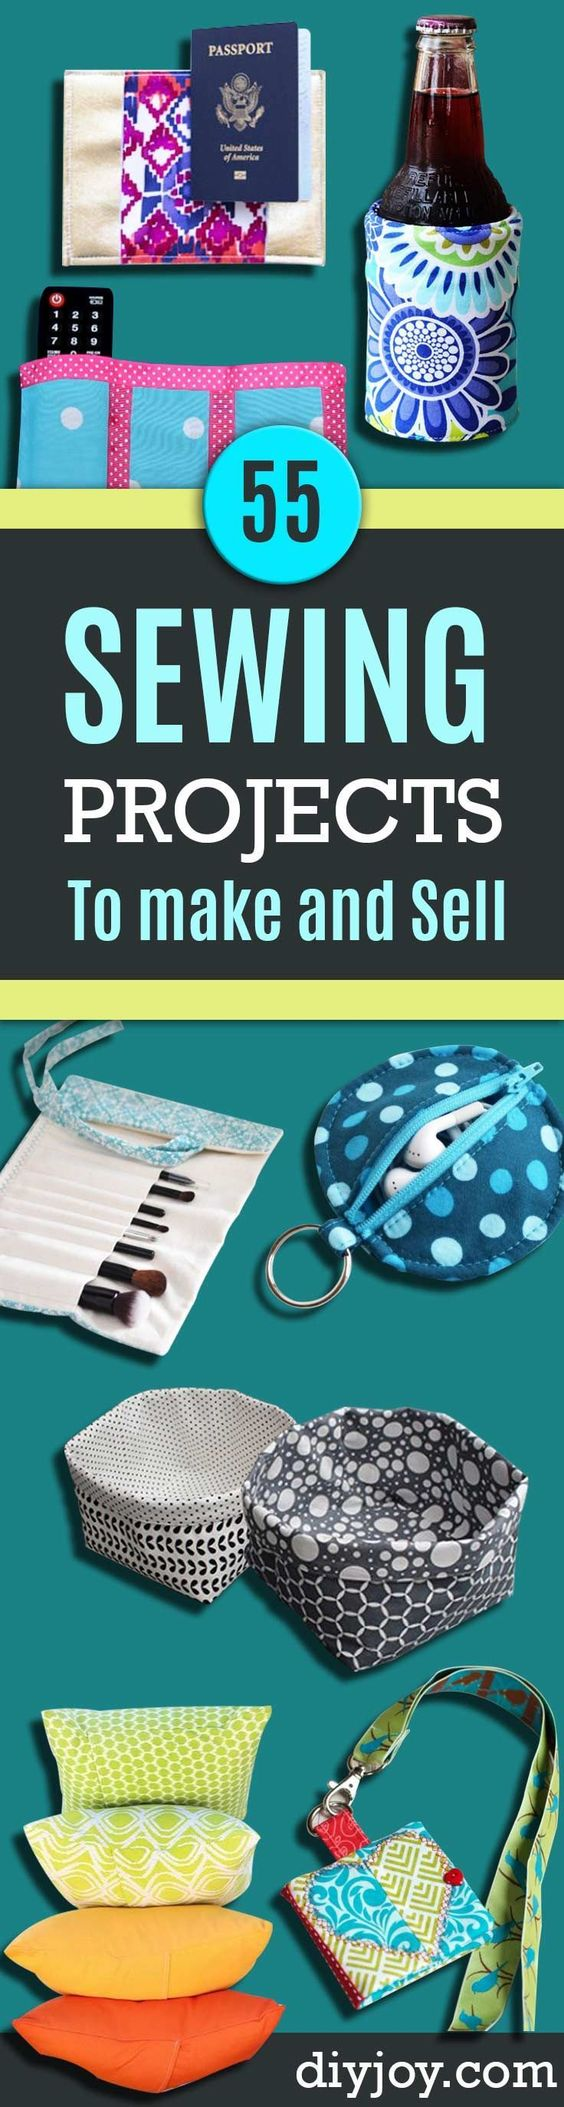 Free pattern crafts and money on pinterest for Money making crafts to sell